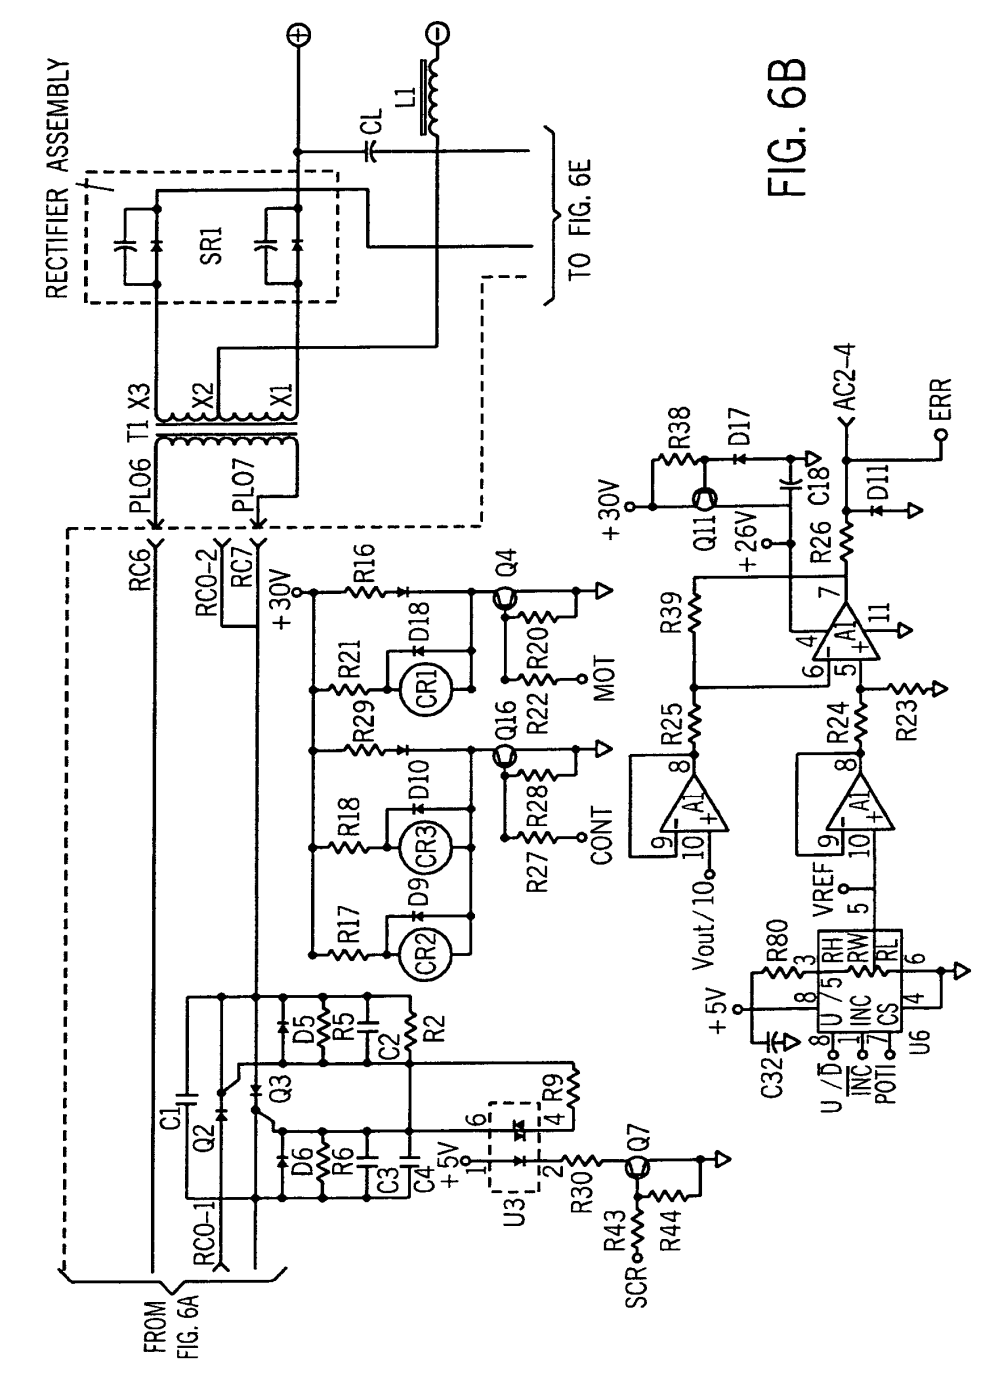 medium resolution of  us08546728 20131001 d00007 patent us8546728 welder with integrated wire feeder having fill rite pump wiring diagram